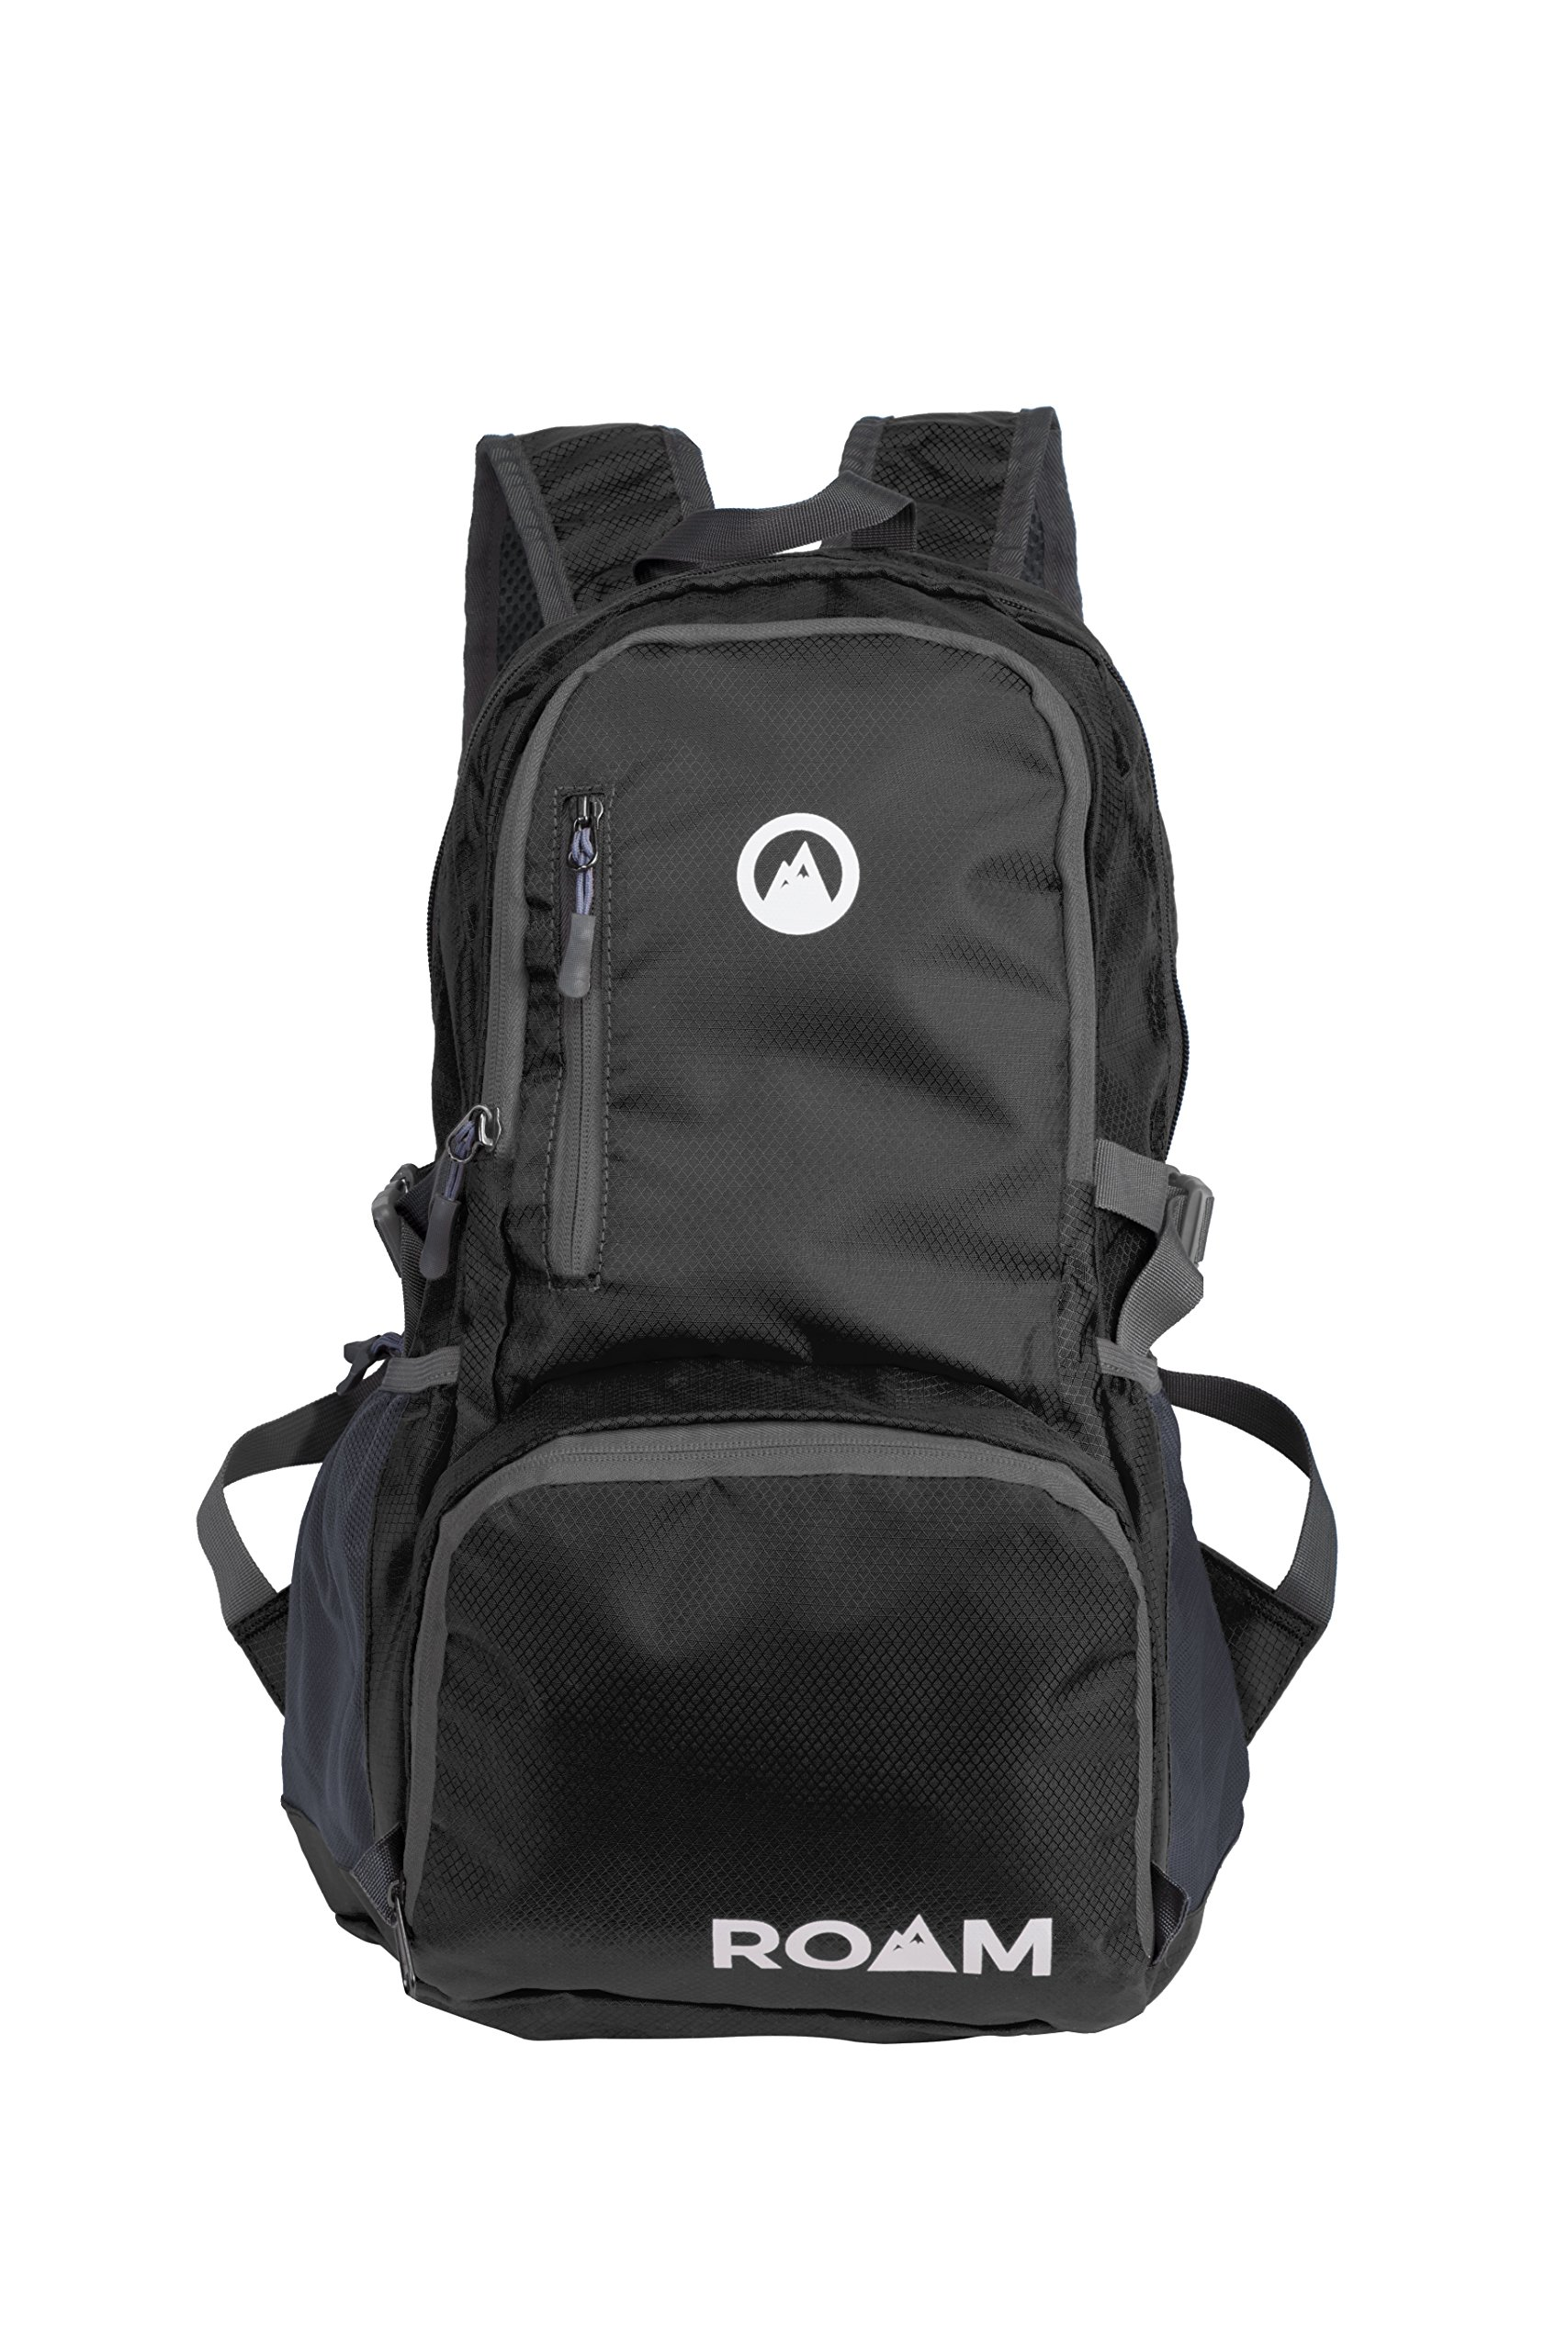 Roam Packable Backpack – Lightweight Foldable Daypack Water-Resistant, 25L, – Durable Tear-Resistant Nylon Weave – Daypack for Travel, Hiking, Backpacking, Camping, Mountaineering, Beach, Outdoors by Roam (Image #8)